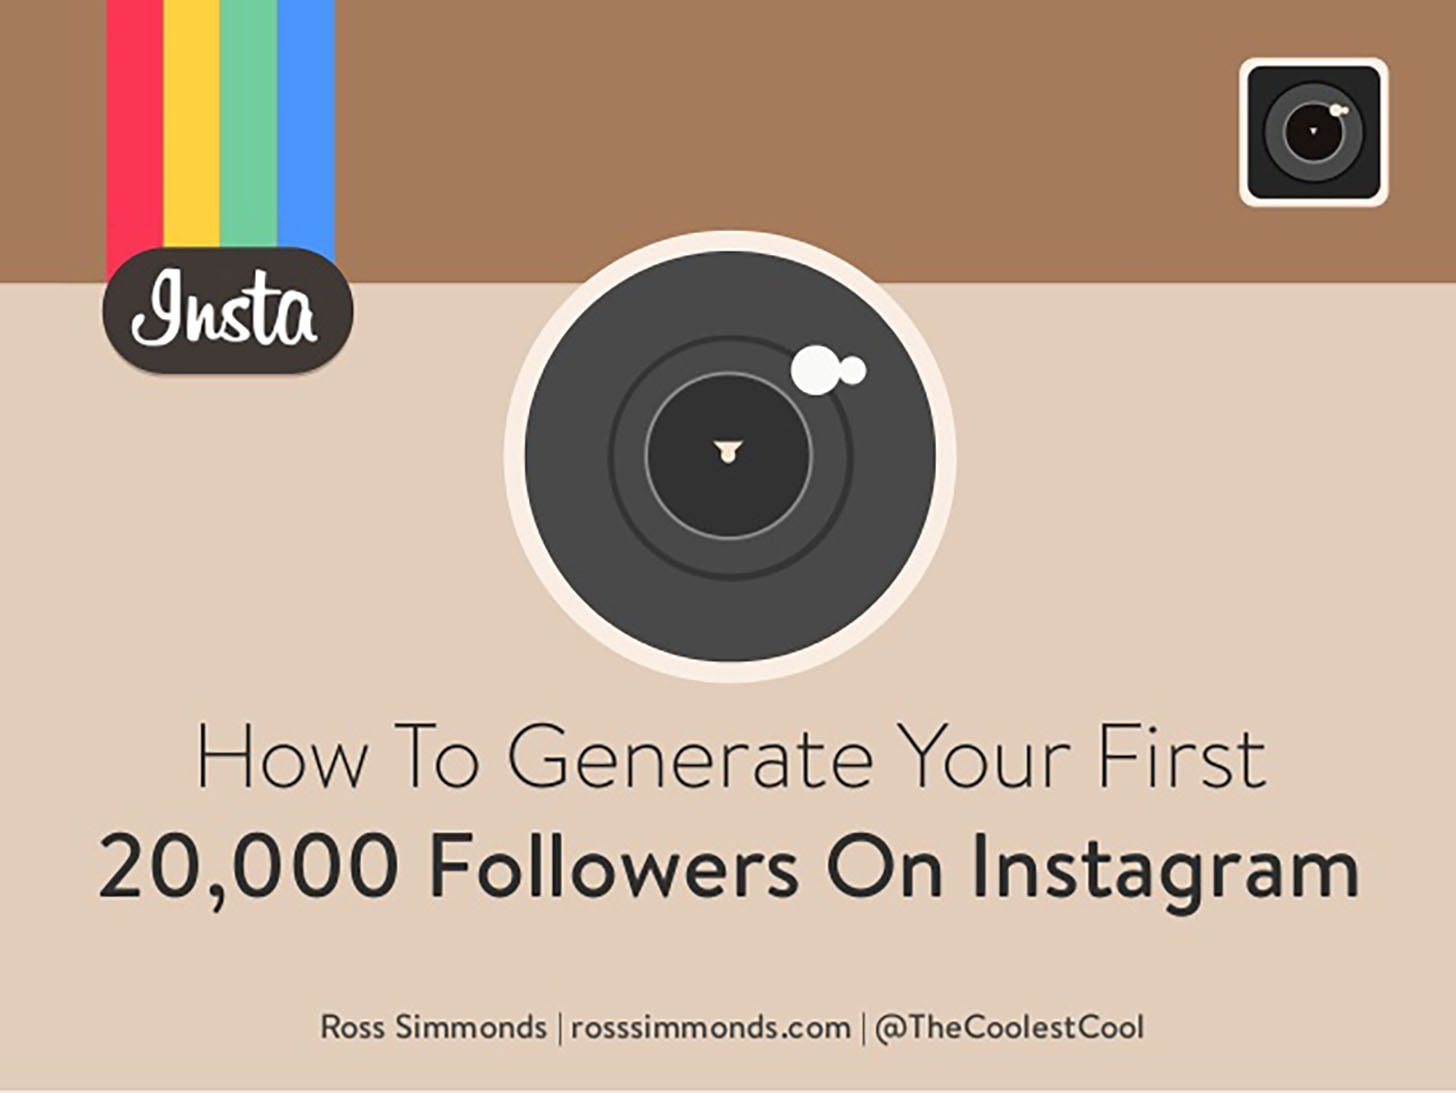 how-to-generate-your-first-20000-followers-on-instagram